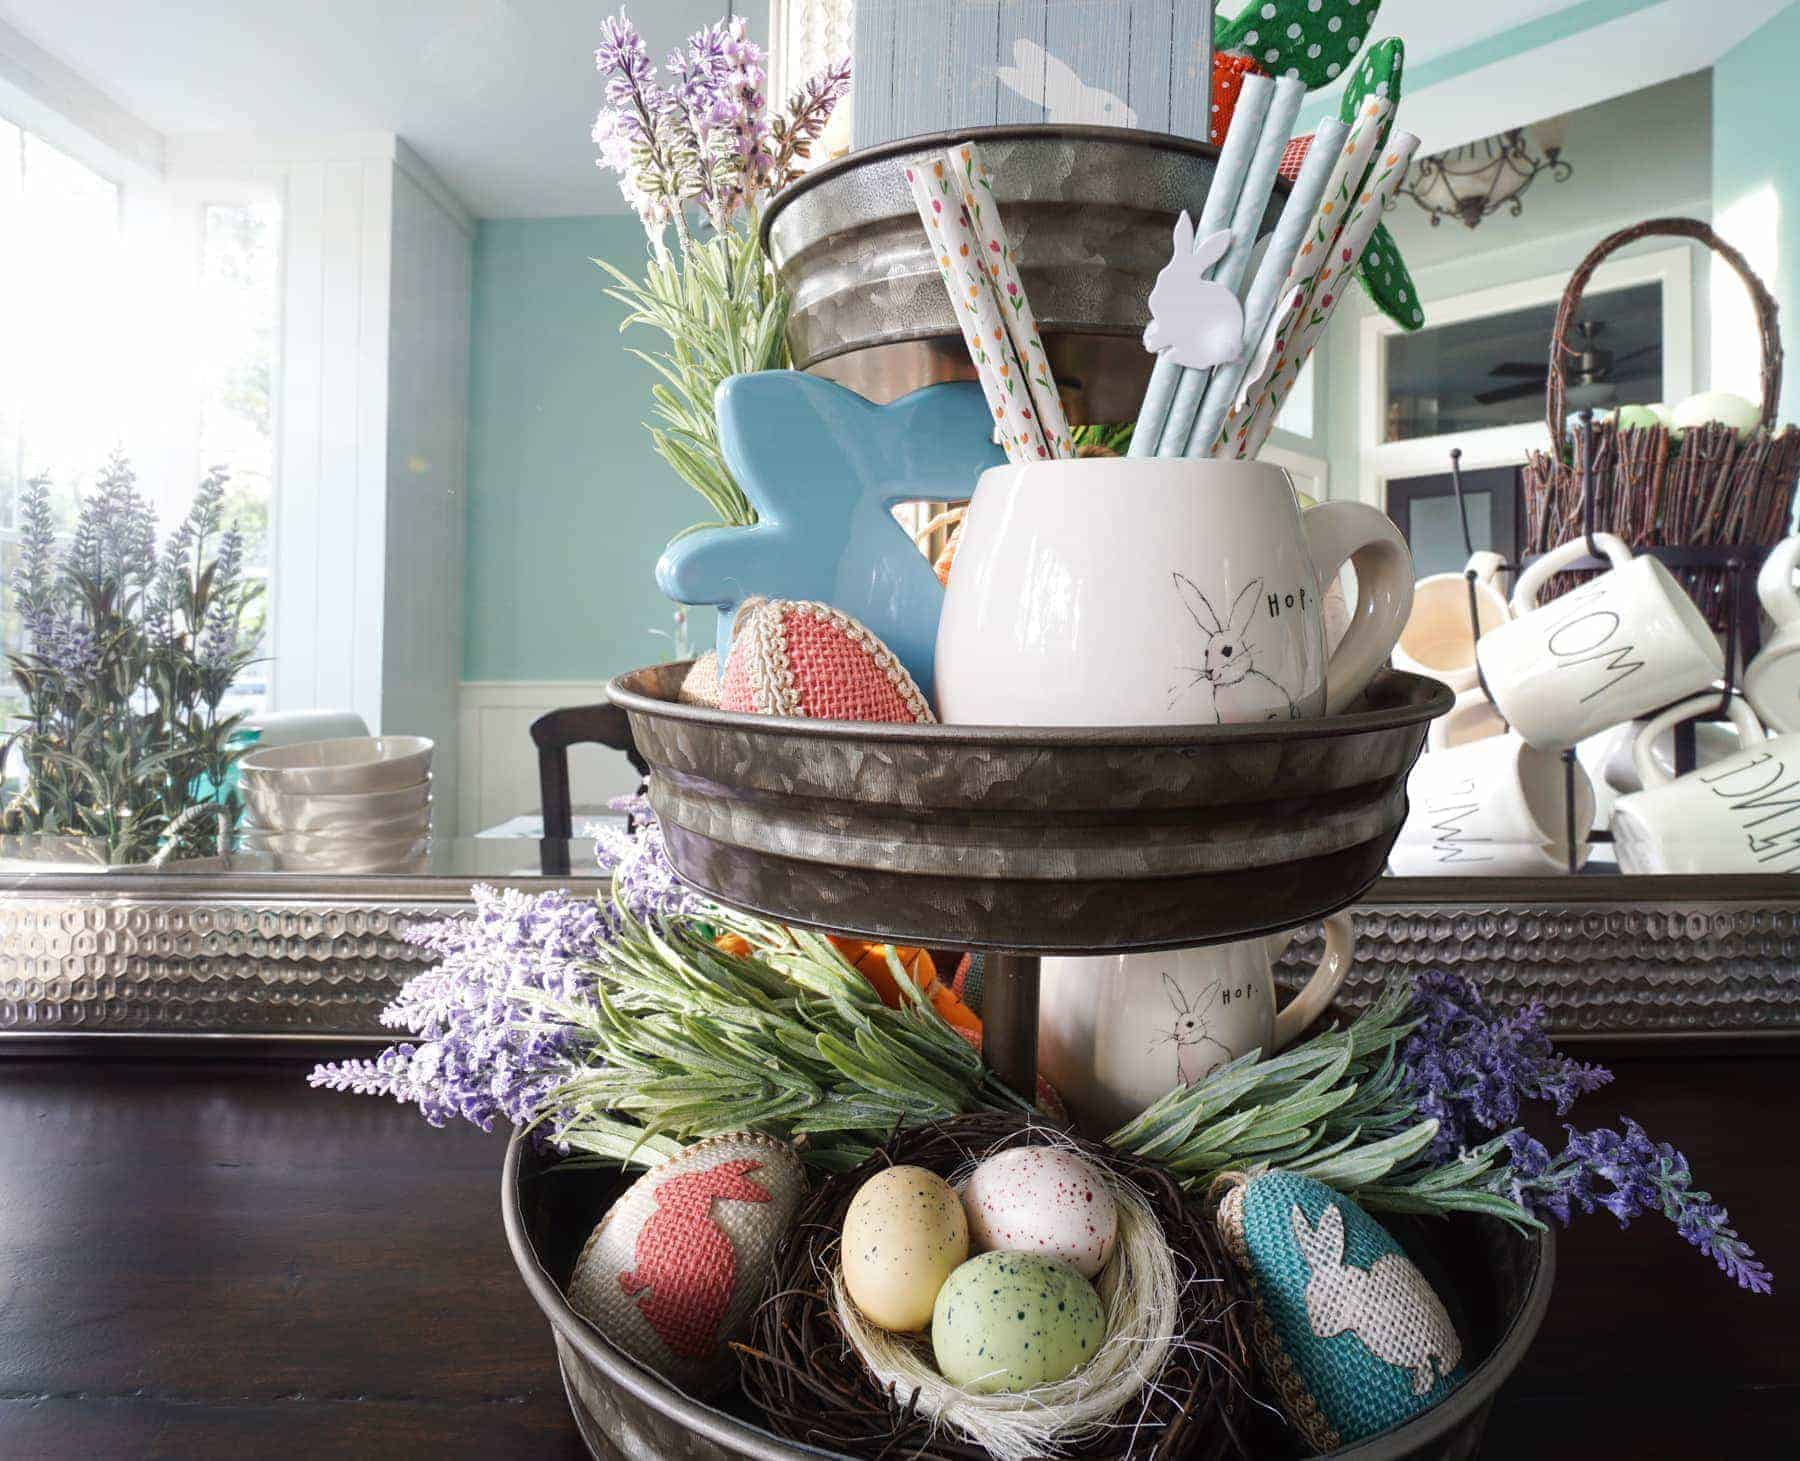 Three Tiered Tray With Easter & Spring Decor